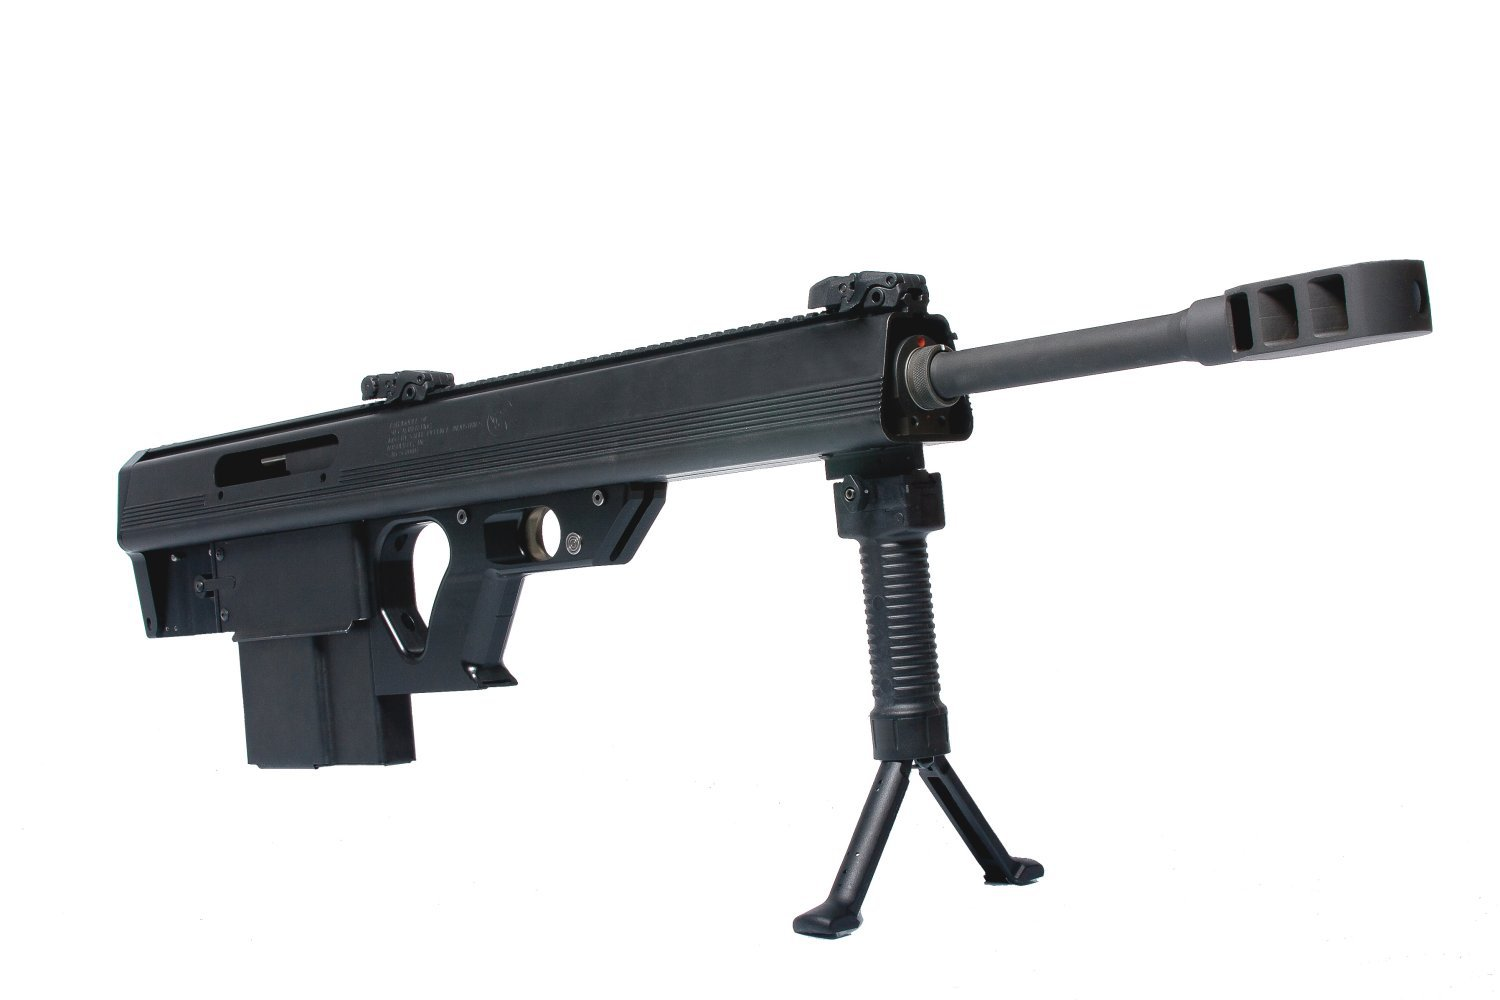 <!--:en-->Leader 50 BMG Revolutionary Ultra-Compact and Lightweight Semi-Auto Bullpup .50 BMG (12.7x99mm NATO) Anti-Materiel/Sniper Rifle for Military Special Operations Forces (SOF) and Civilian Tactical Shooters: Coming Soon to a Theater of Operations and Shooting Range Near You? <!--:-->